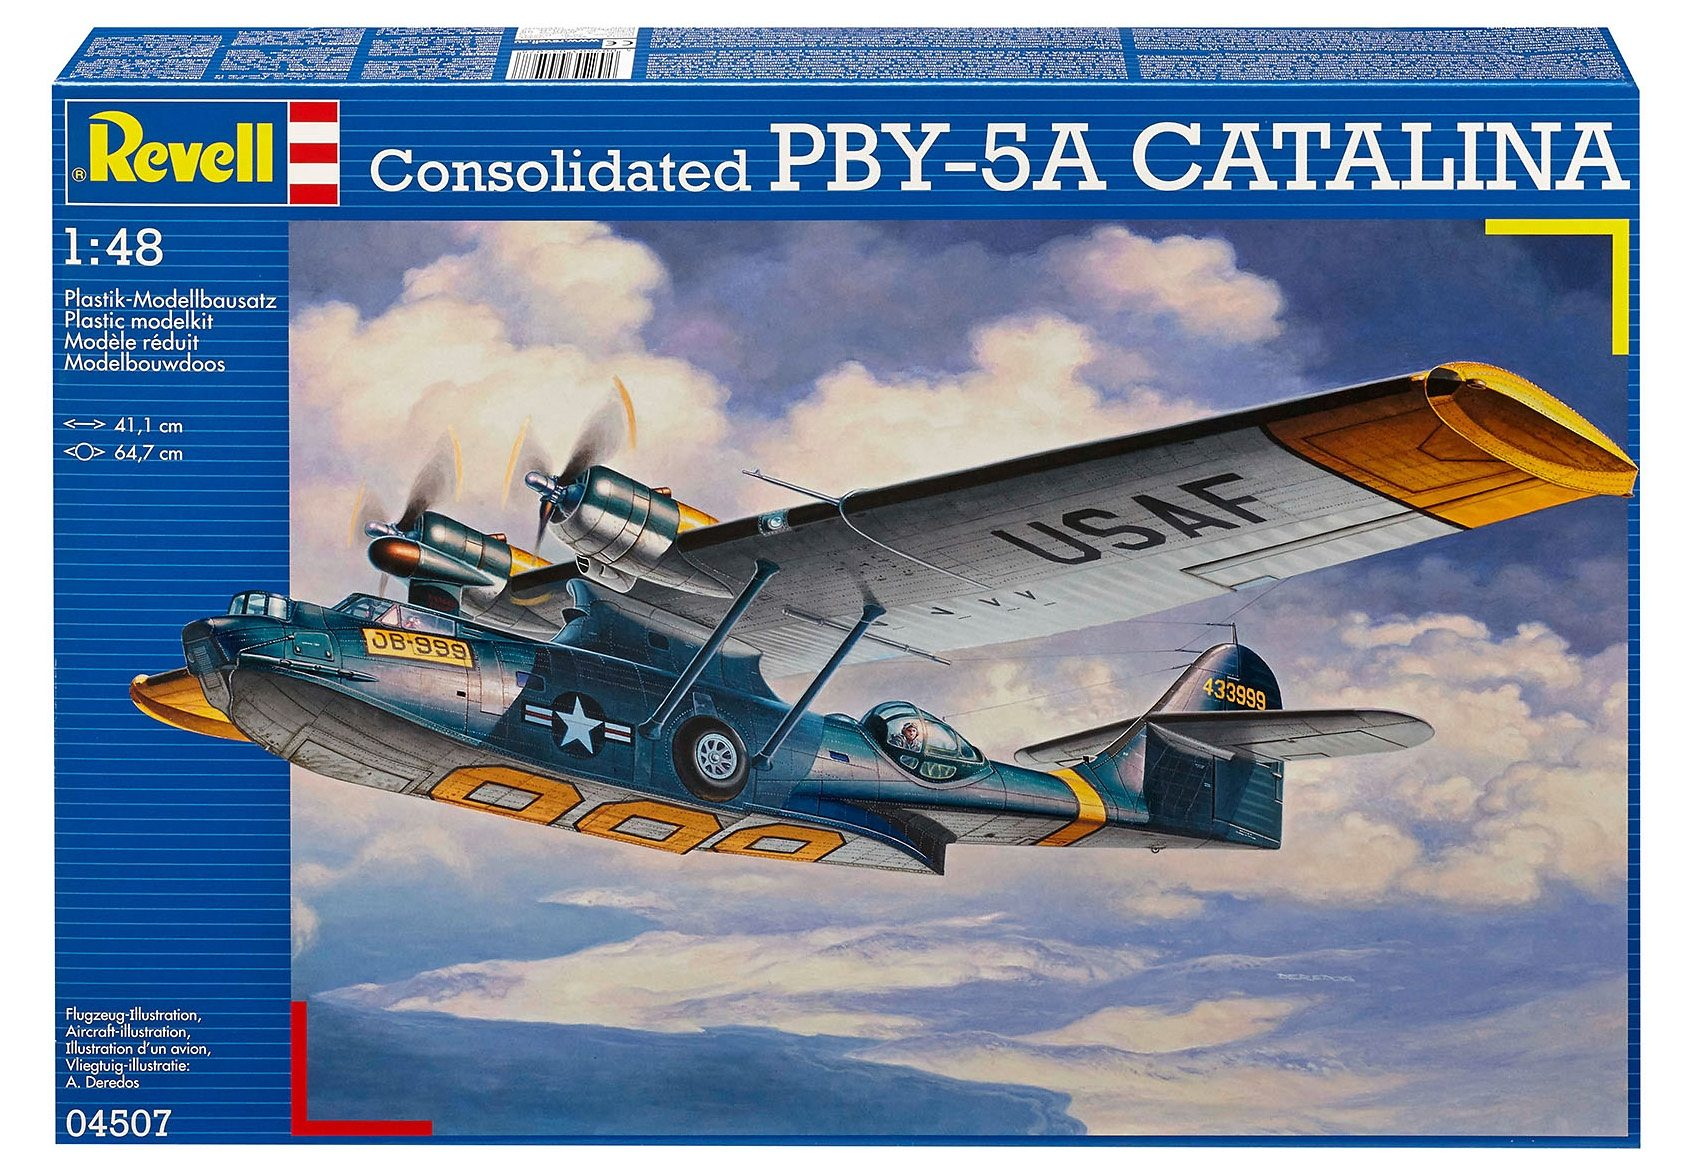 Revell® Modellbausatz Flugzeug, »Consolidated PBY-5A Catalina«, 1:48